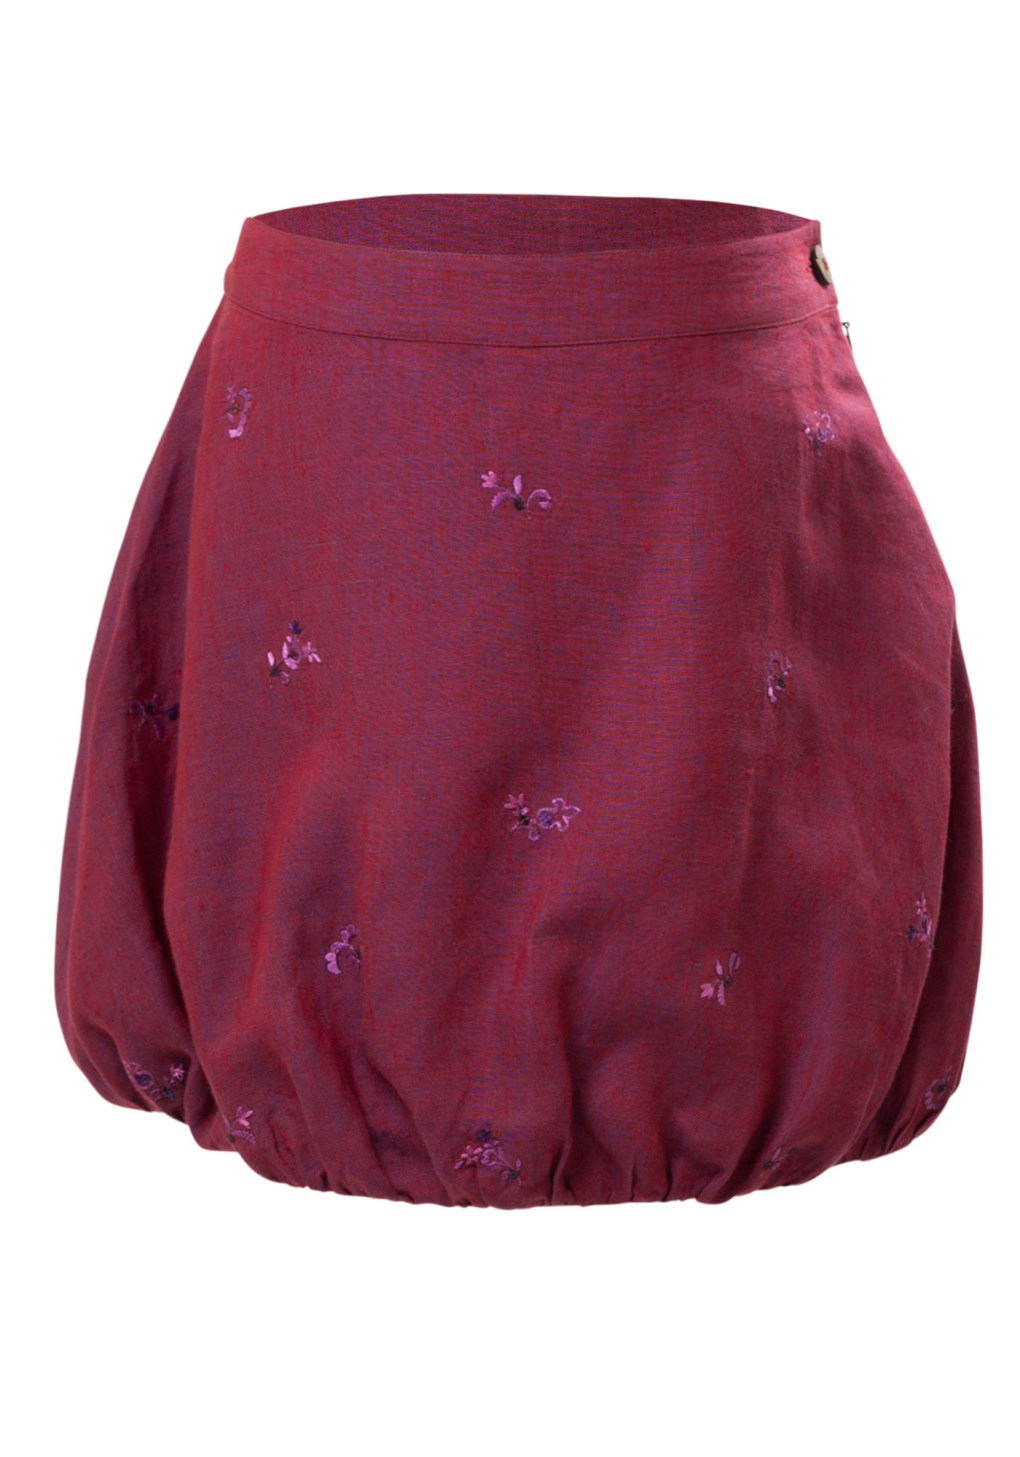 MINC Petite Sangria Girls Embroidered Bubble Skirt in Wine Purple Linen